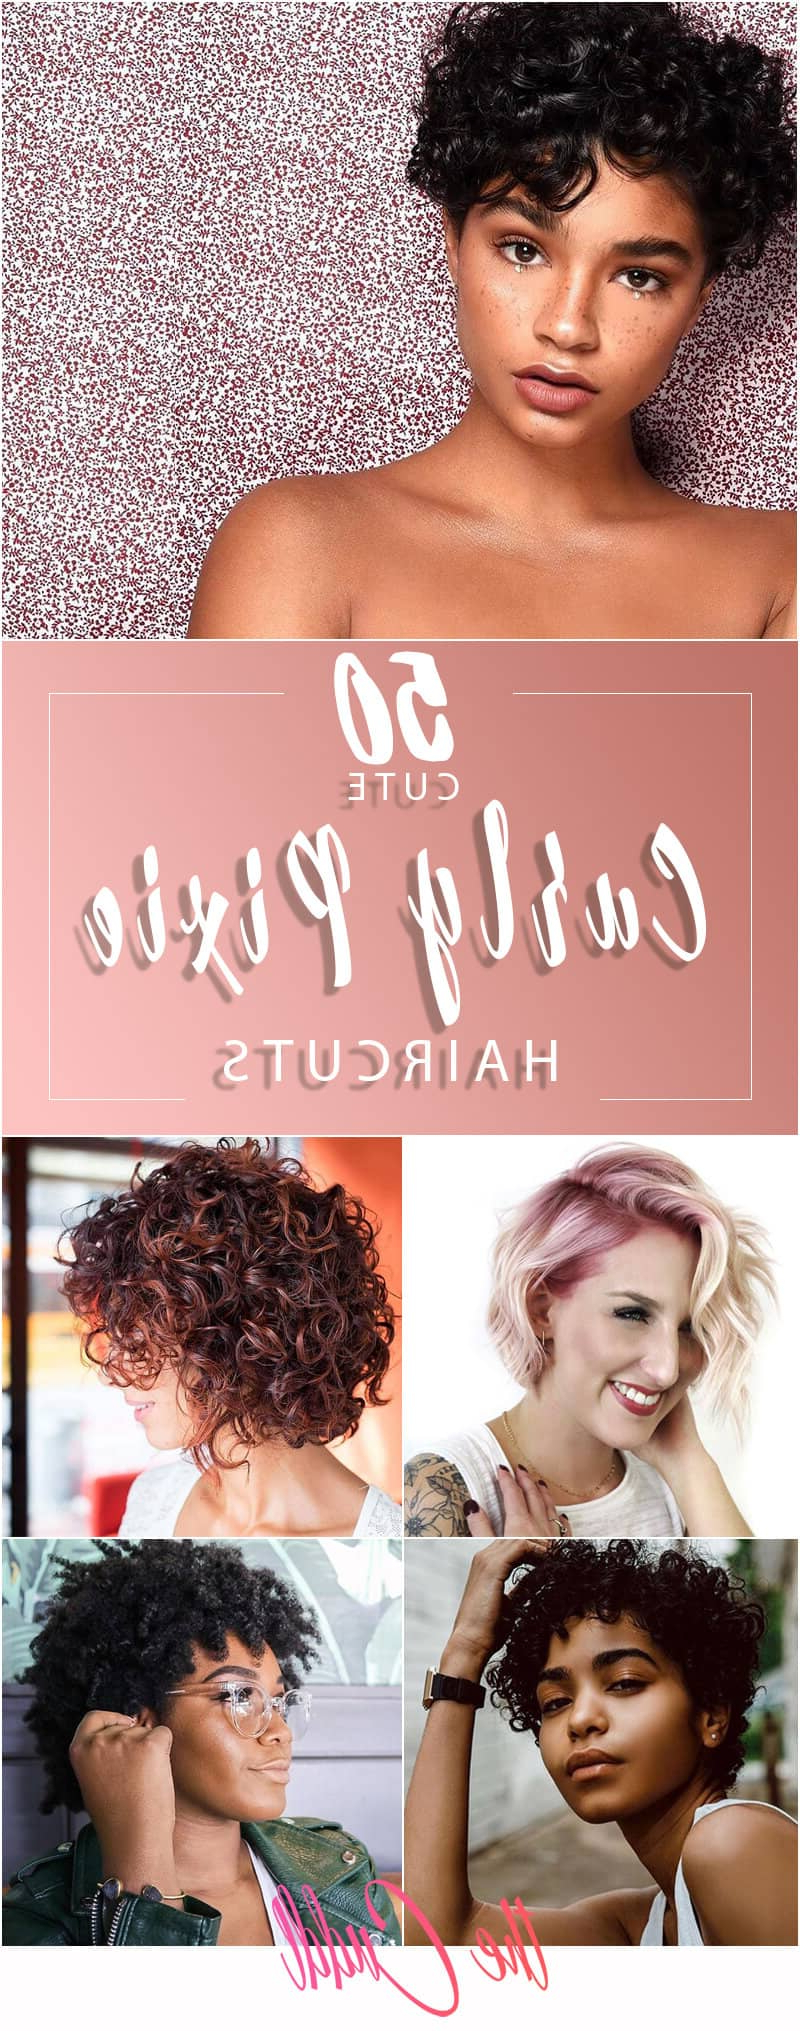 50 Bold Curly Pixie Cut Ideas To Transform Your Style In 2019 Throughout Pastel Pixie Haircuts With Curly Bangs (View 6 of 20)